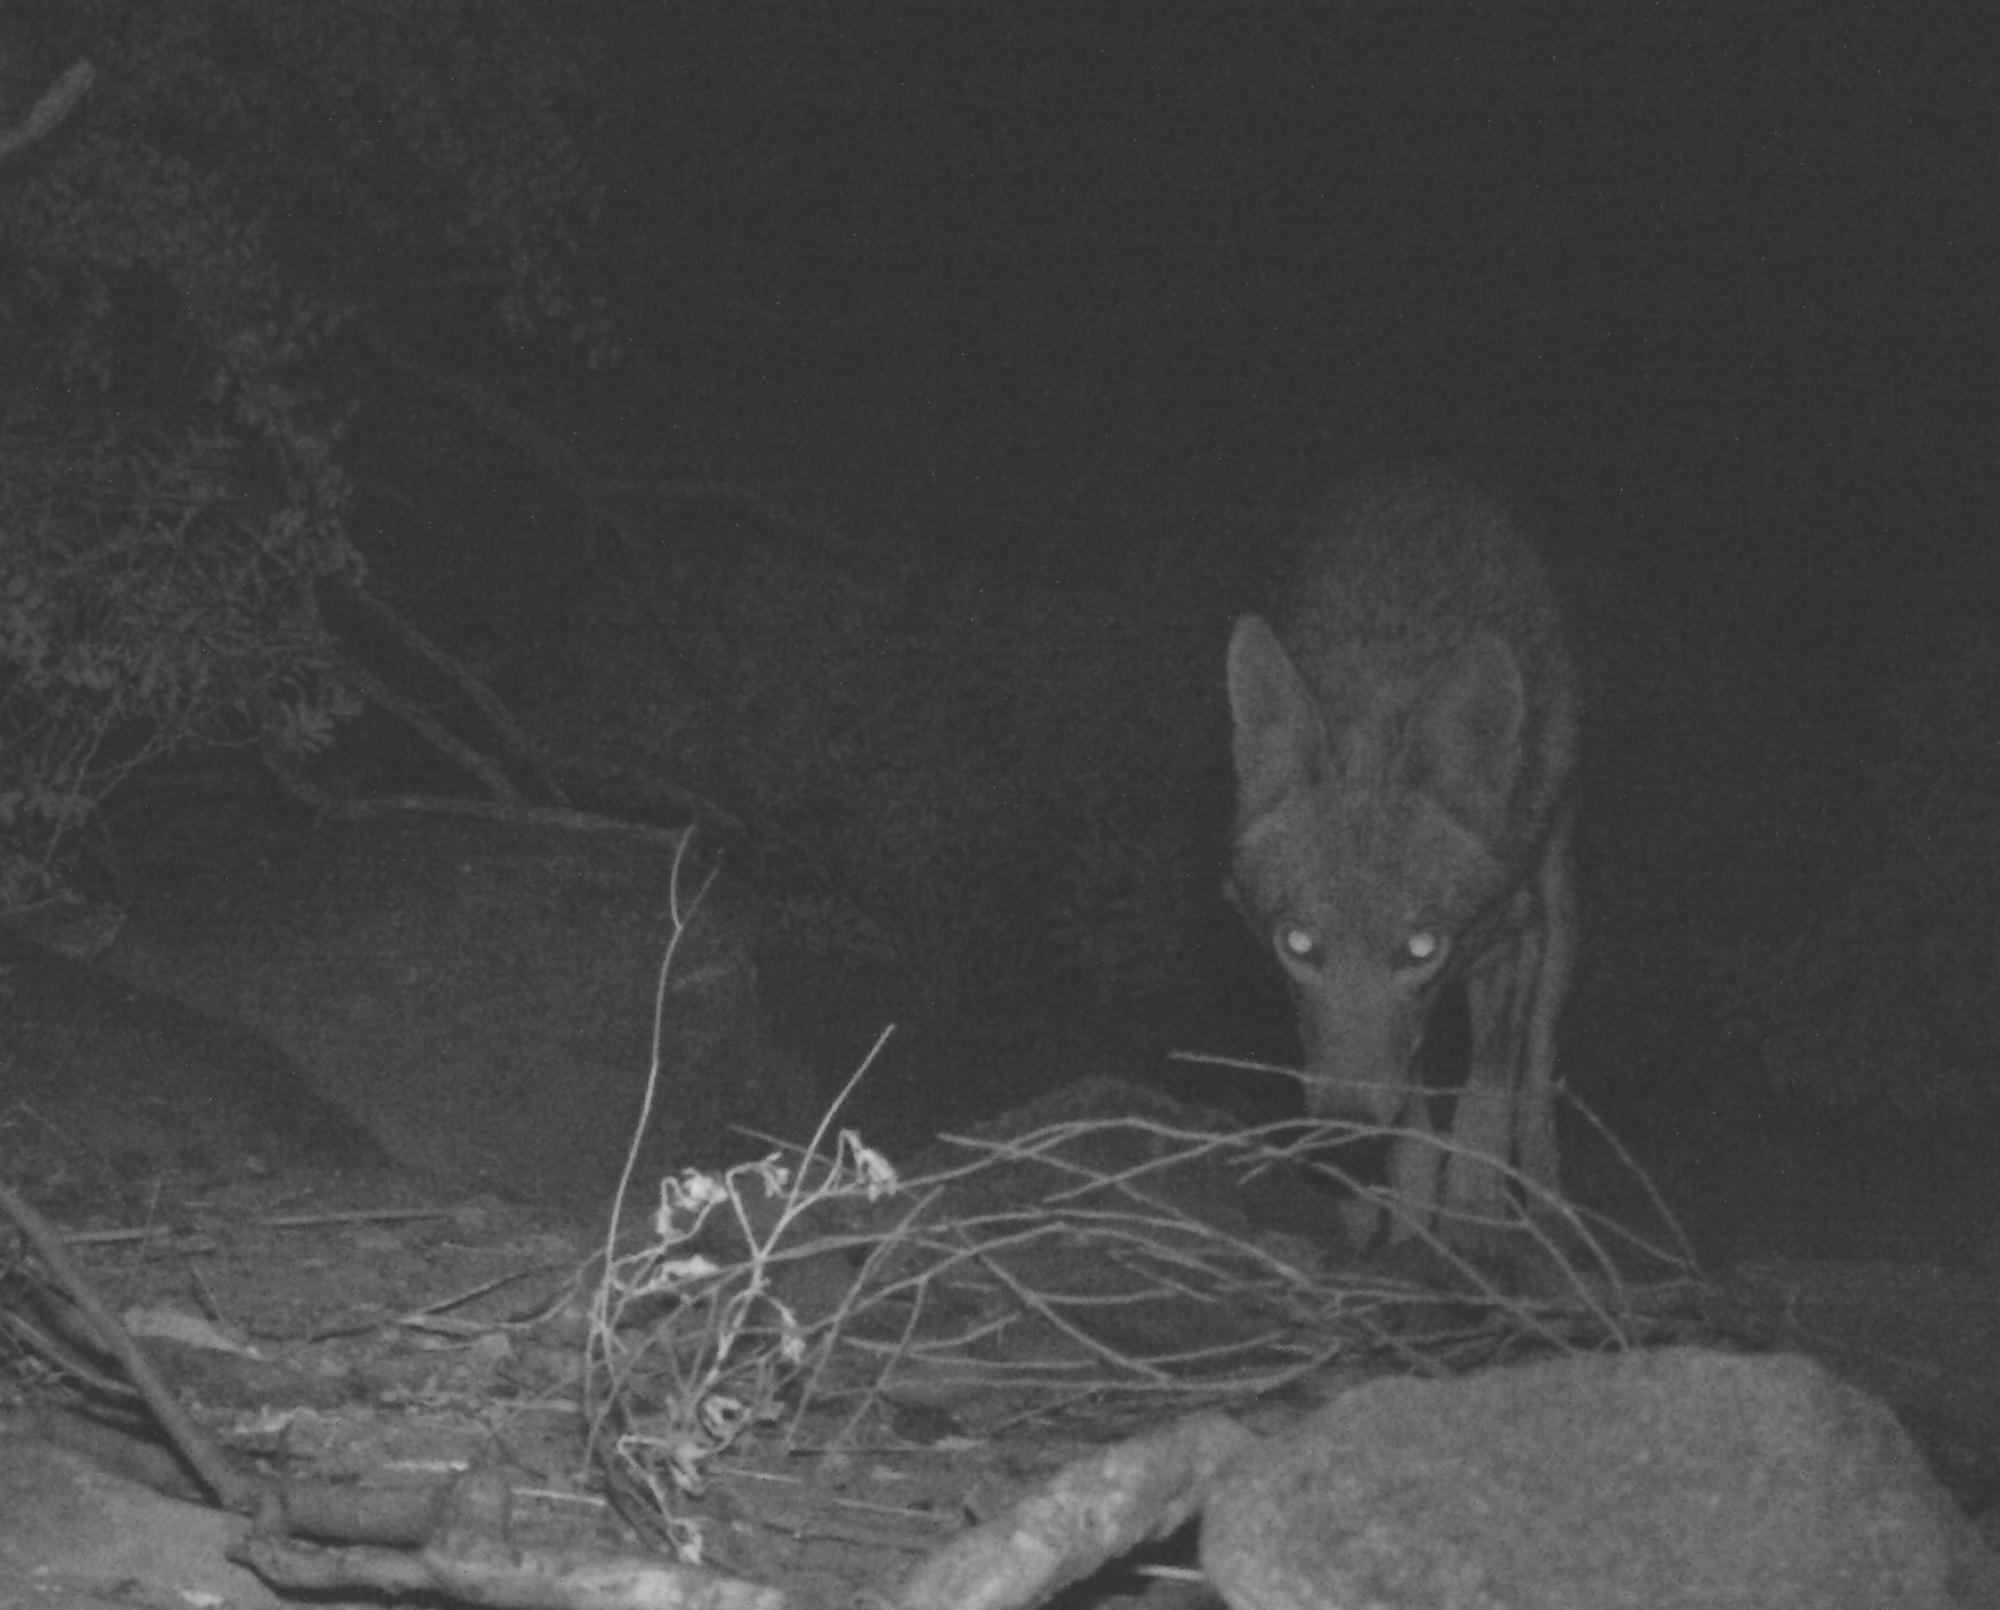 A coyote takes a nocturnal excursion through the shrubby desert.